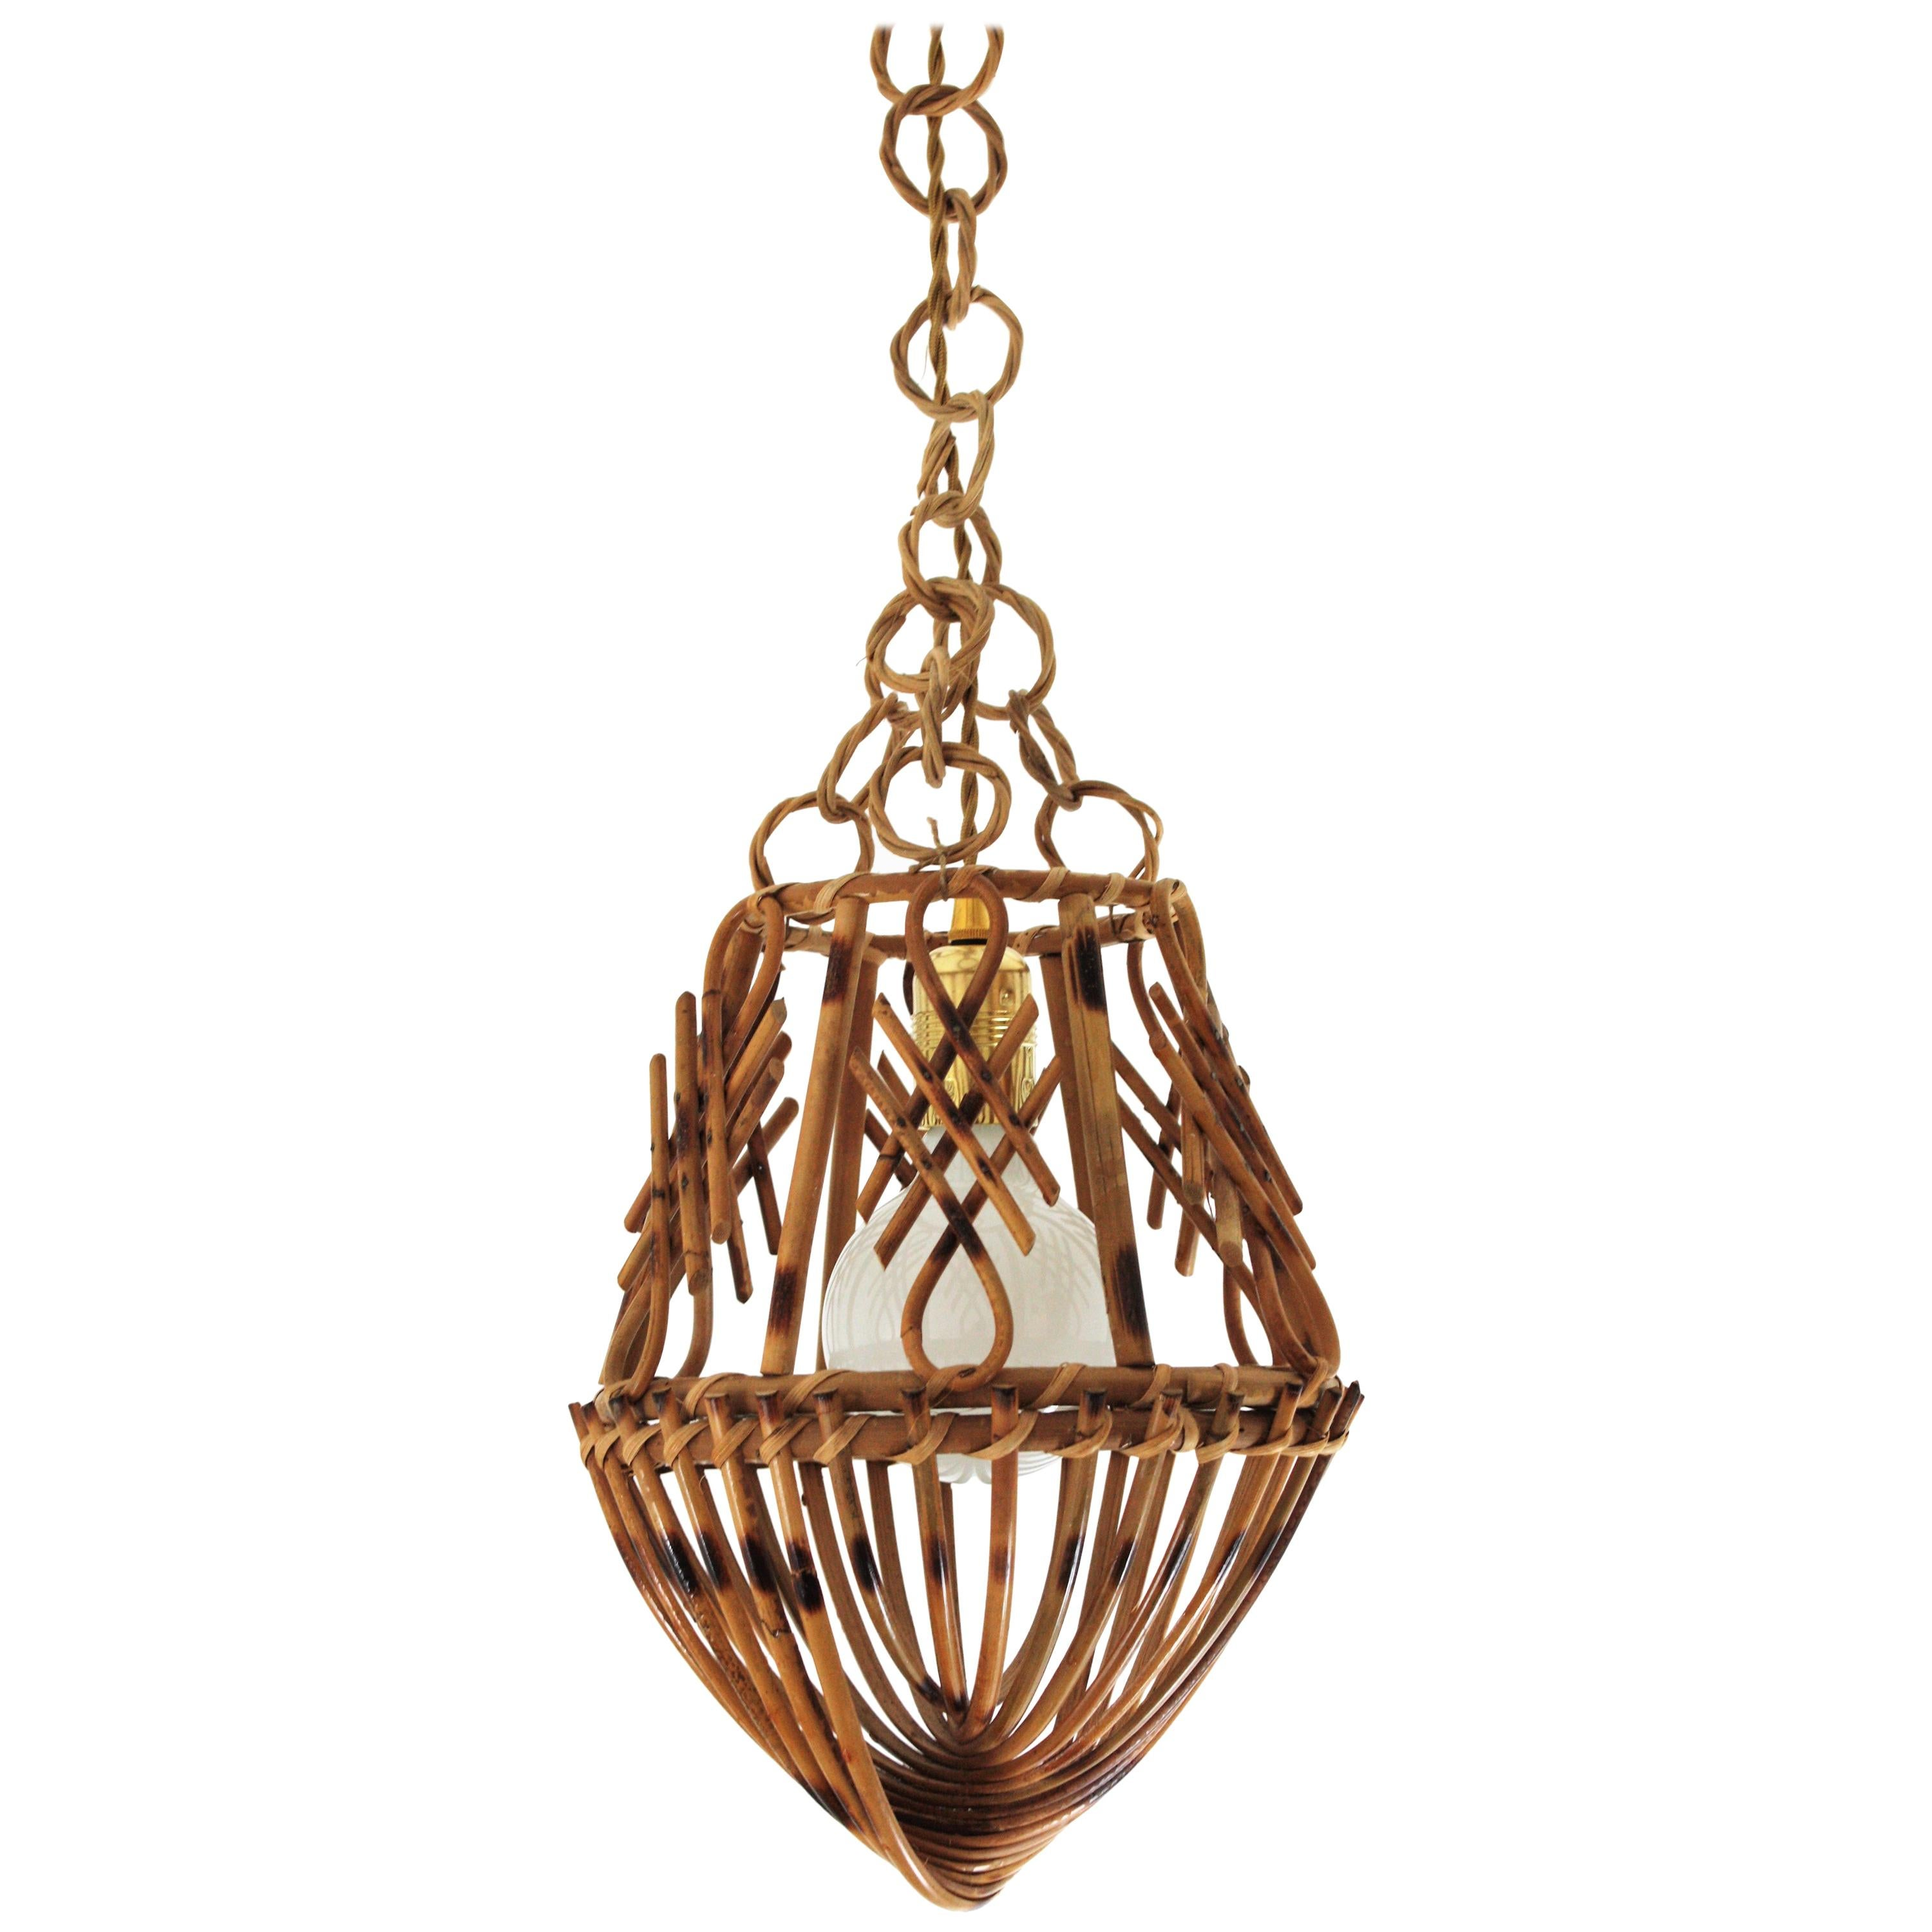 Rattan French Modernist Pendant Lamp or Lantern with Chinoiserie Accents